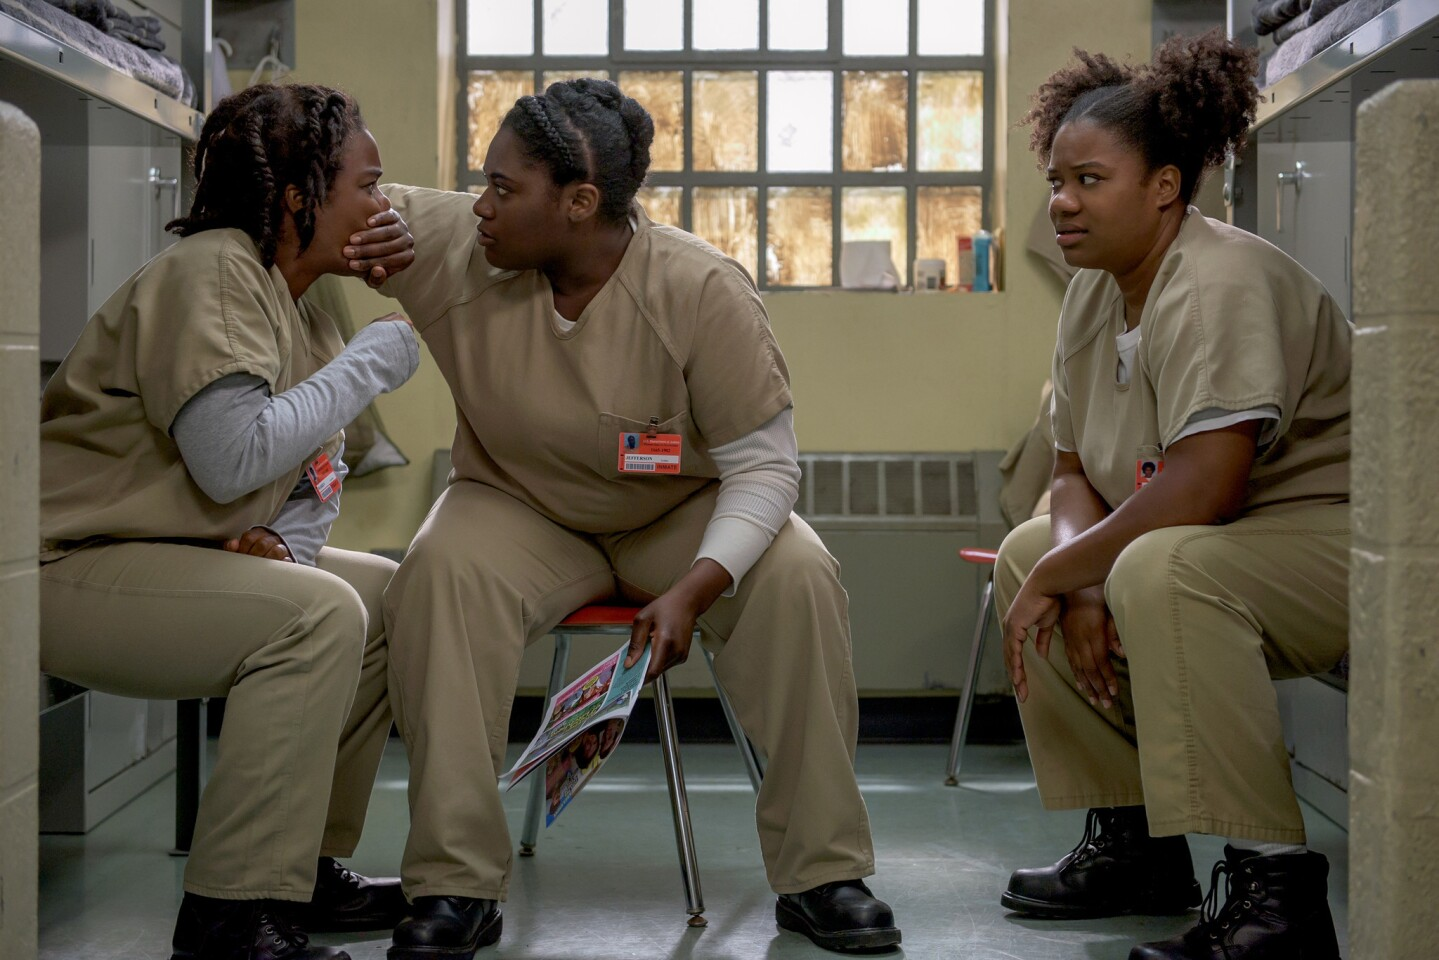 """Images from Season 4 of the Netflix series """"Orange Is the New Black"""" hint at a darker tone."""